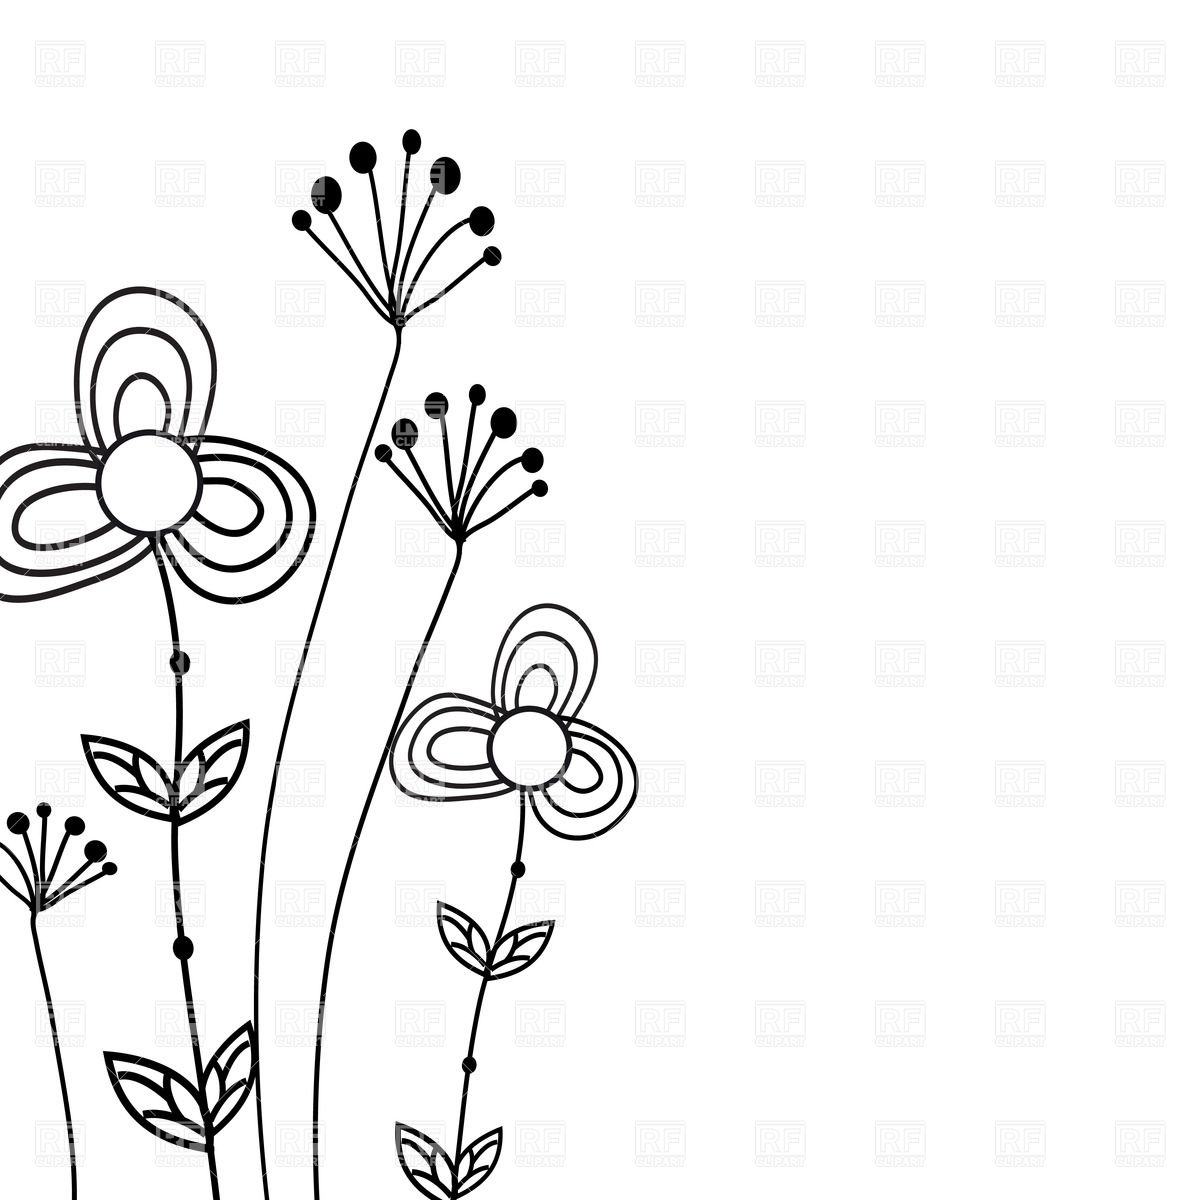 1200x1200 Stylish Wildflowers In Simple Line Style Royalty Free Vector Clip